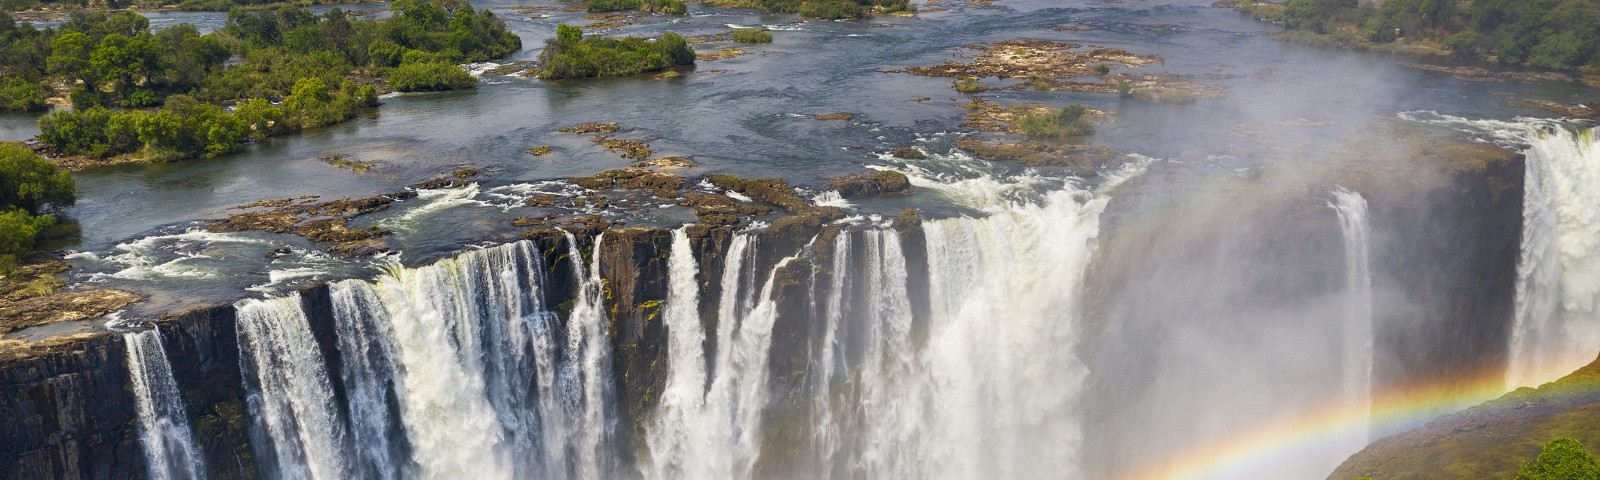 Aerial view of Victoria Falls in Africa.